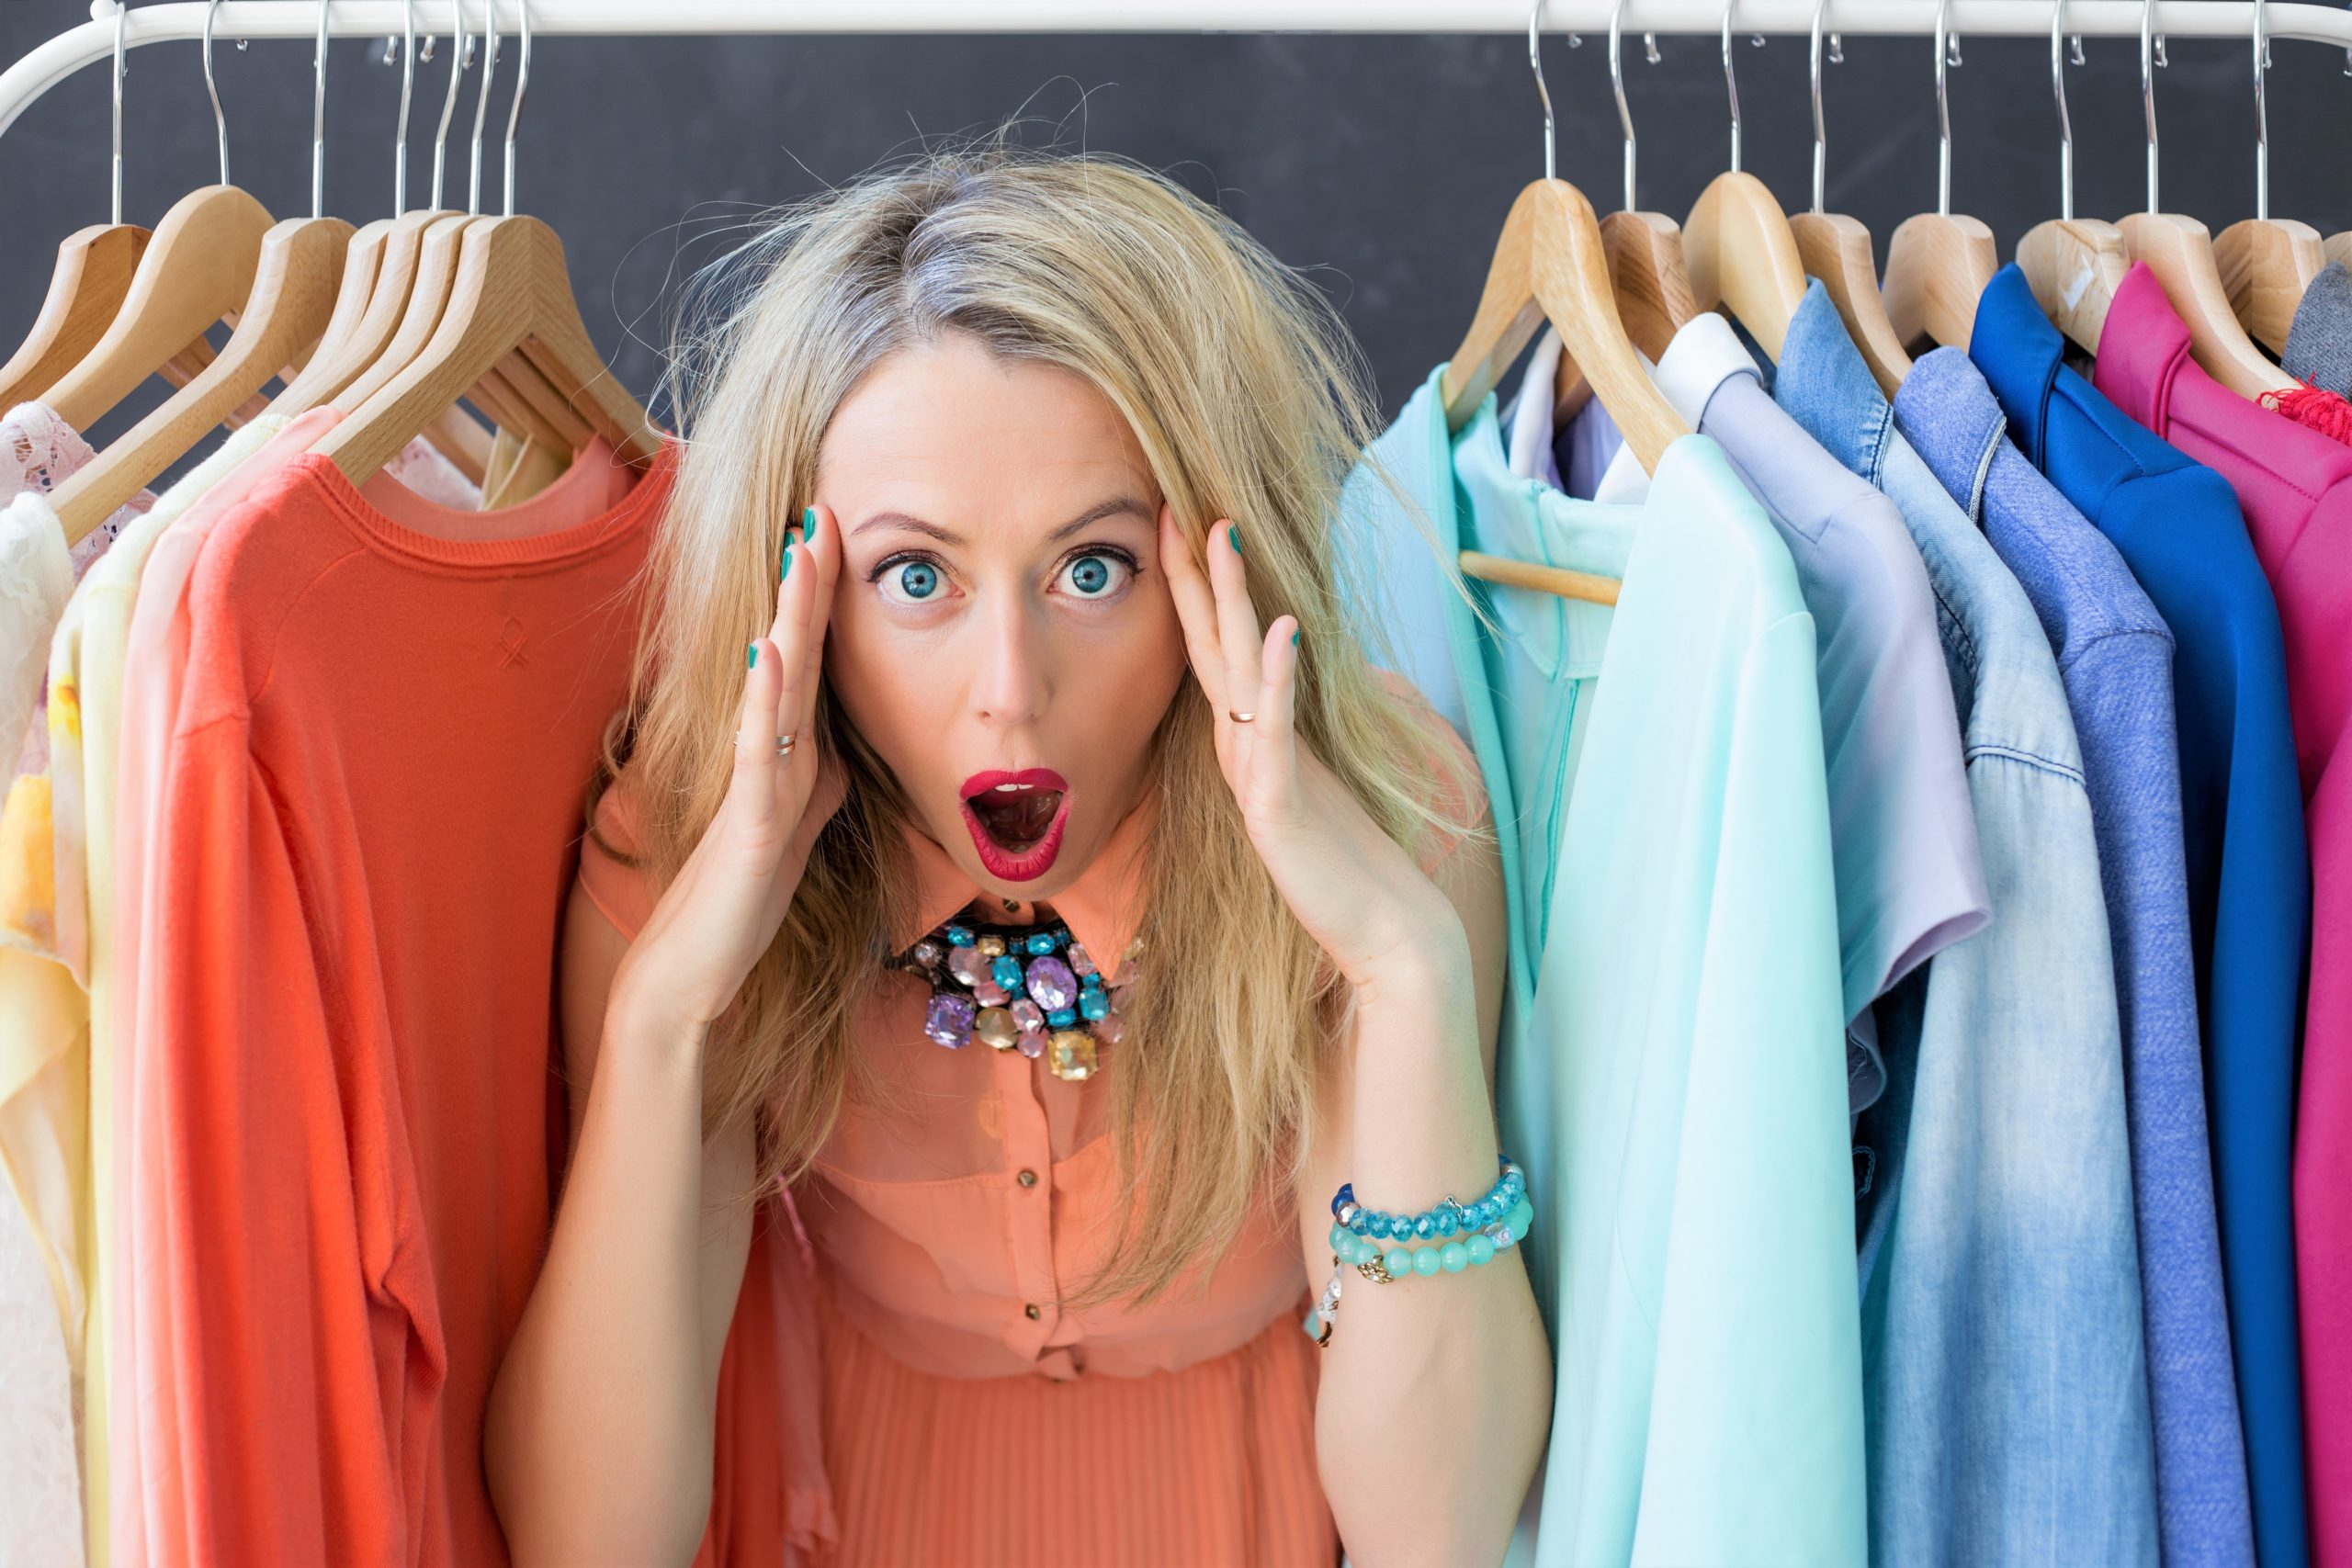 Stressed out woman in her clothes closet.